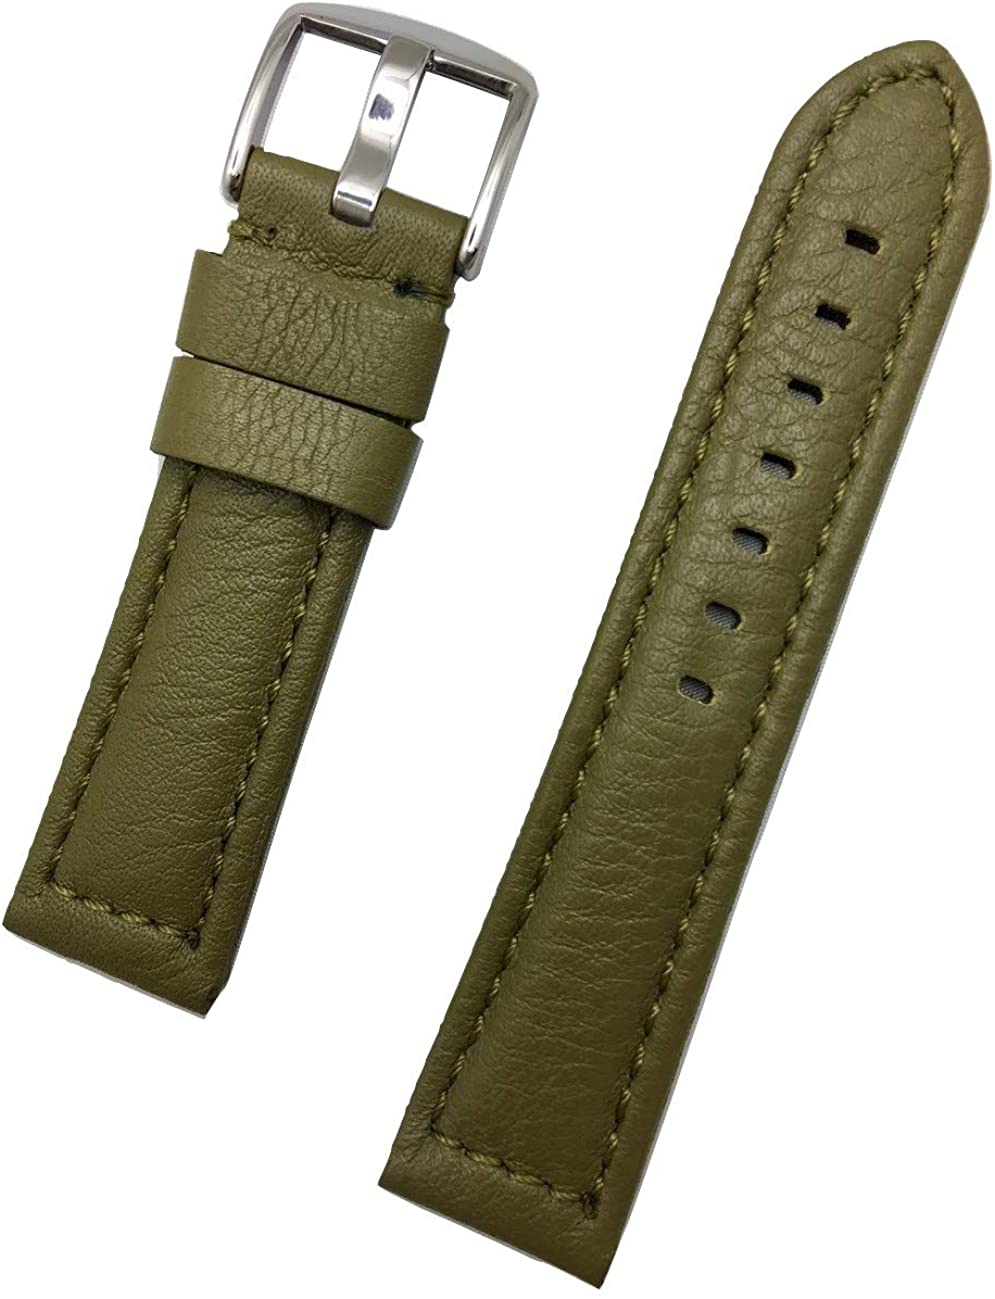 22mm Green Panerai Style Genuine Leather Watch Band | Soft, Smooth, Medium Padded Replacement Wrist Strap Bracelet That Brings New Life to Any Watch (Mens Standard Length)